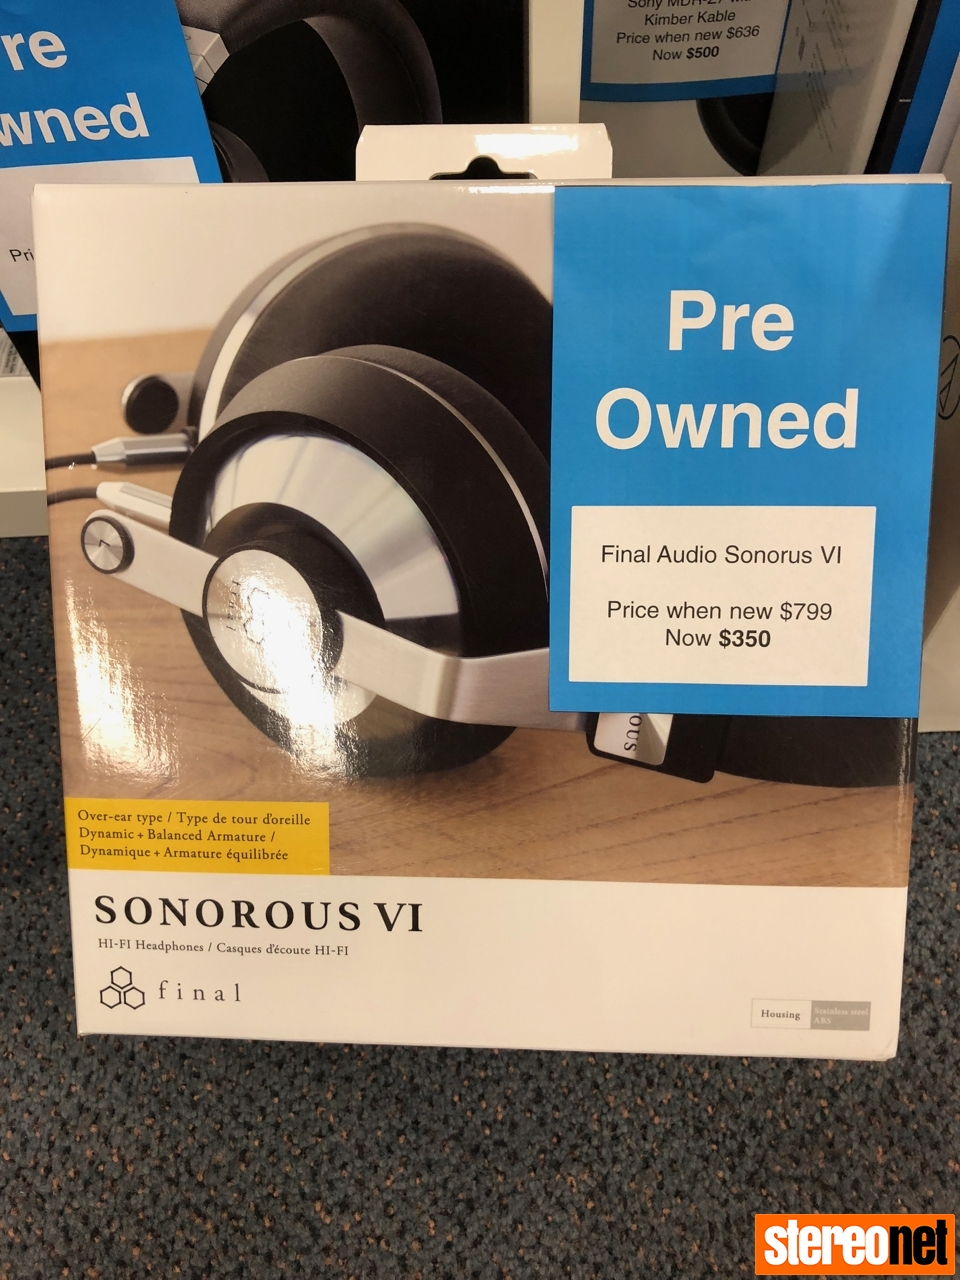 Stereonet Australia New Zealand Headphone Bargain Hunters Should